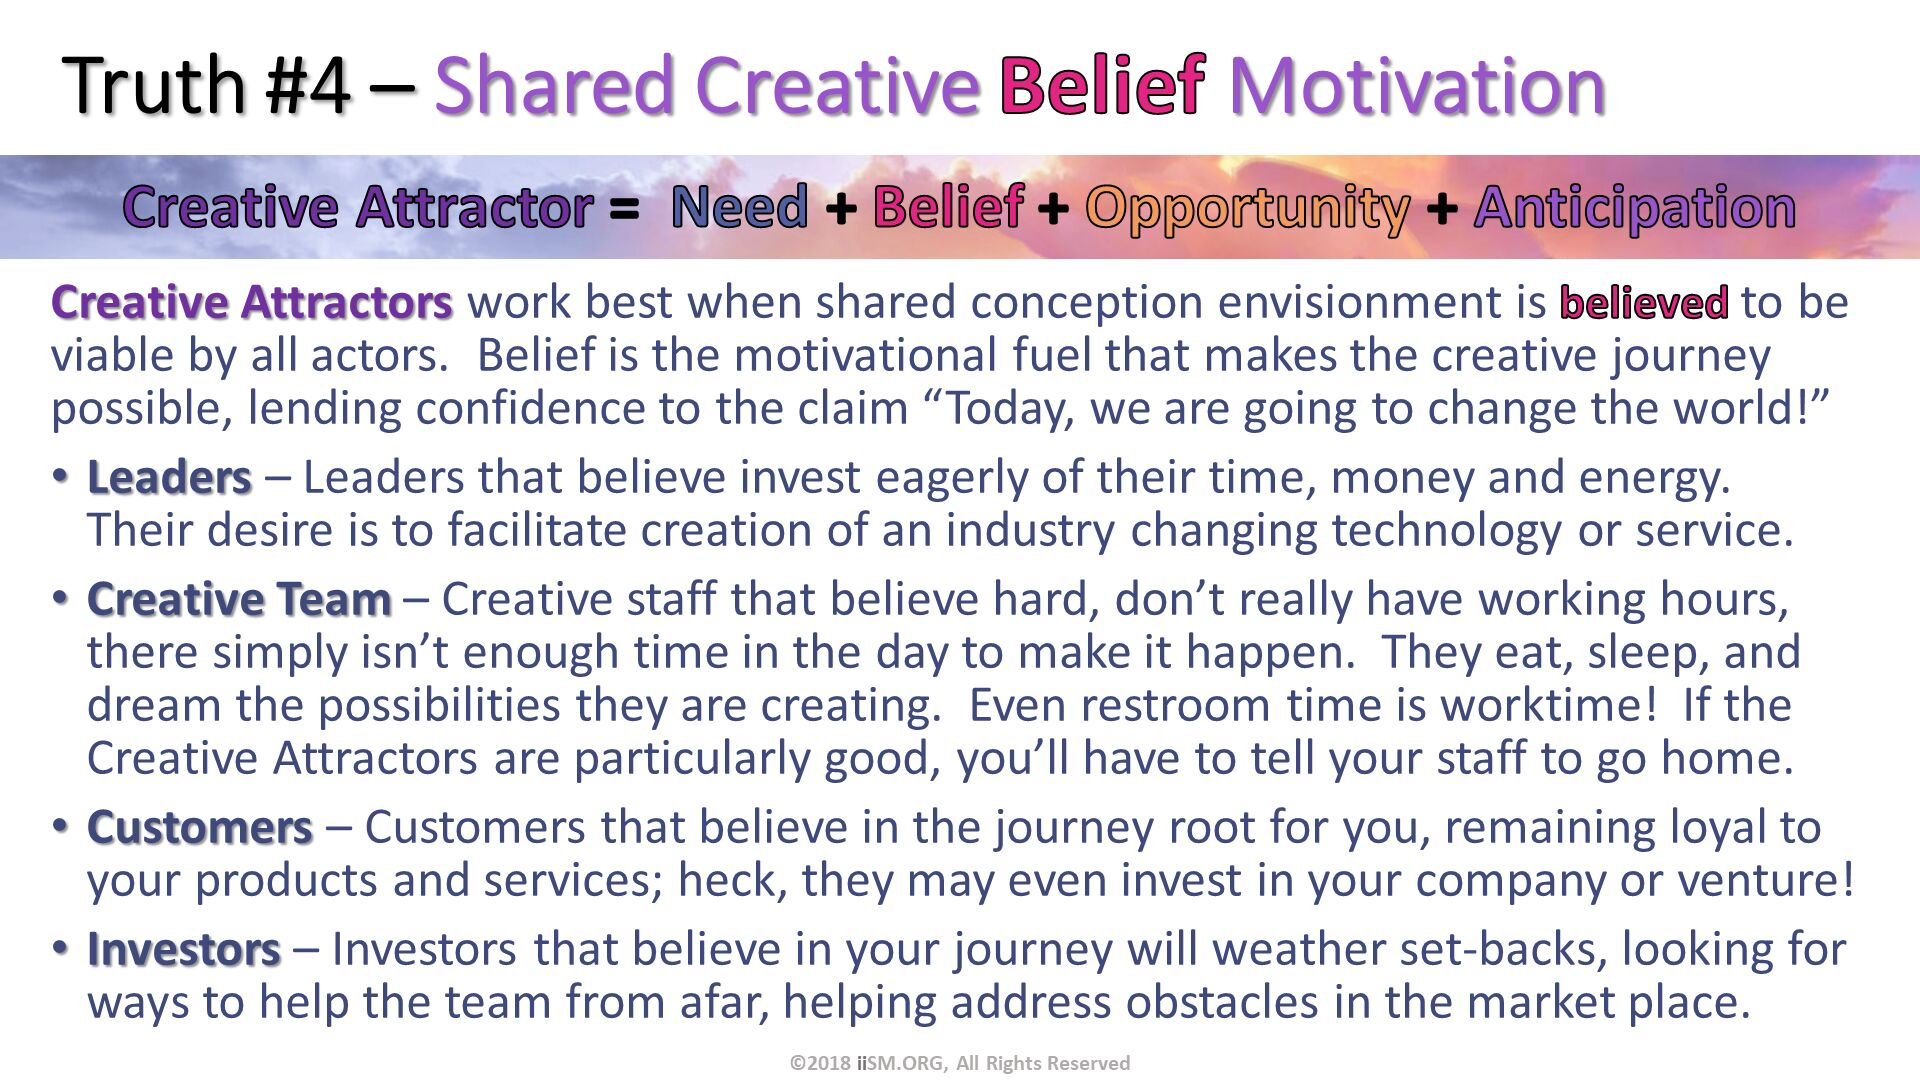 "Truth #4 – Shared Creative Belief Motivation. Creative Attractors work best when shared conception envisionment is believed to be viable by all actors.  Belief is the motivational fuel that makes the creative journey possible, lending confidence to the claim ""Today, we are going to change the world!"" Leaders – Leaders that believe invest eagerly of their time, money and energy.  Their desire is to facilitate creation of an industry changing technology or service. Creative Team – Creative staff that believe hard, don't really have working hours, there simply isn't enough time in the day to make it happen.  They eat, sleep, and dream the possibilities they are creating.  Even restroom time is worktime!  If the Creative Attractors are particularly good, you'll have to tell your staff to go home. Customers – Customers that believe in the journey root for you, remaining loyal to your products and services; heck, they may even invest in your company or venture! Investors – Investors that believe in your journey will weather set-backs, looking for ways to help the team from afar, helping address obstacles in the market place.  . ©2018 iiSM.ORG, All Rights Reserved."